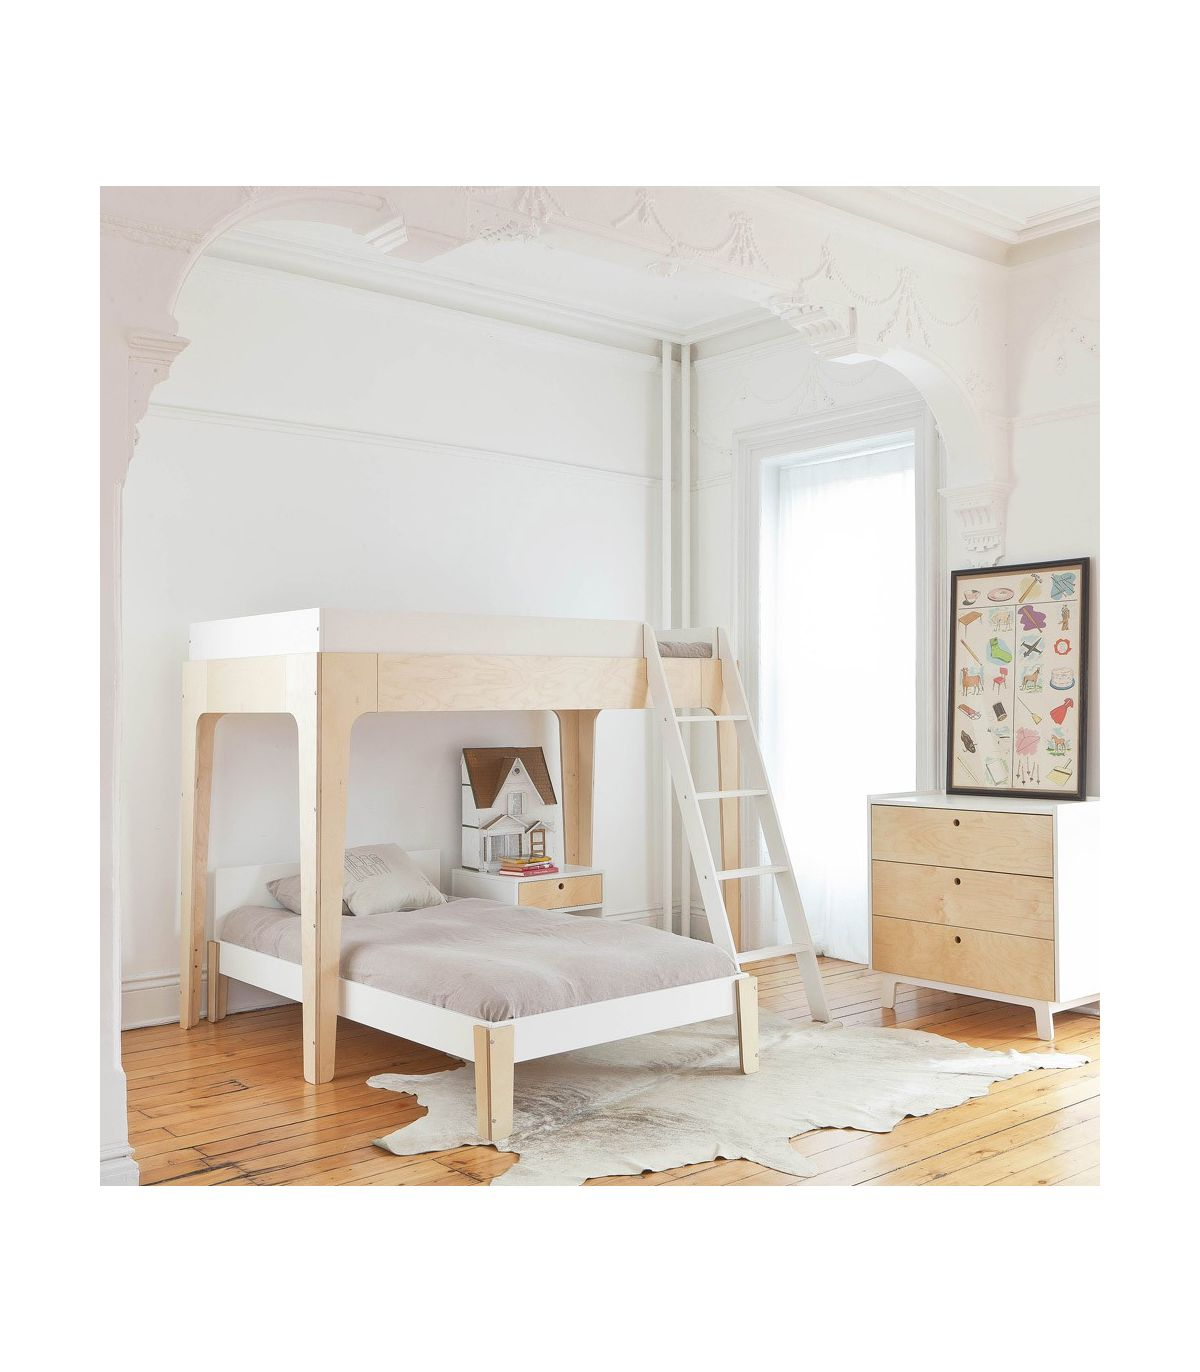 Junior Bed Toddler Perch Oeuf NYC